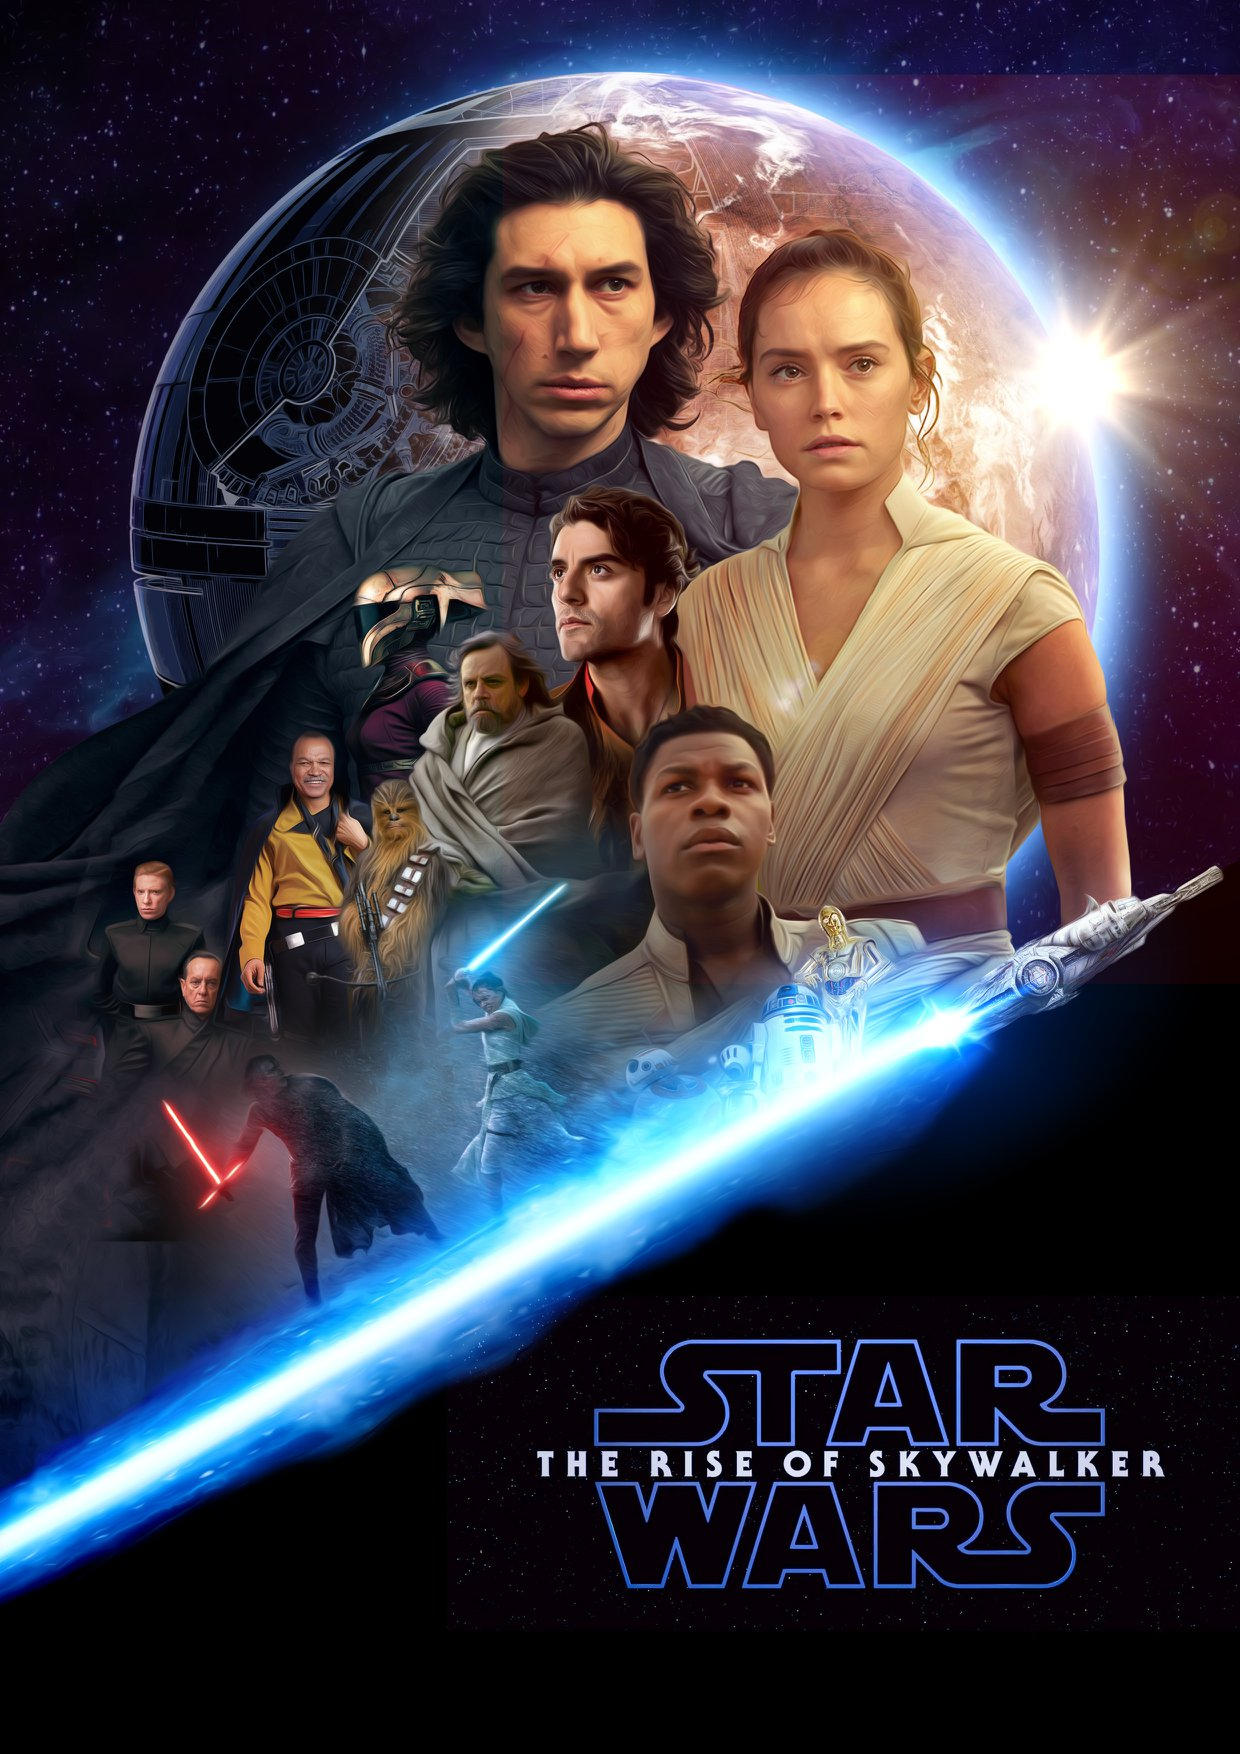 Star Wars The Rise Of Skywalker Fanart Poster By Augen2 Geek Carl